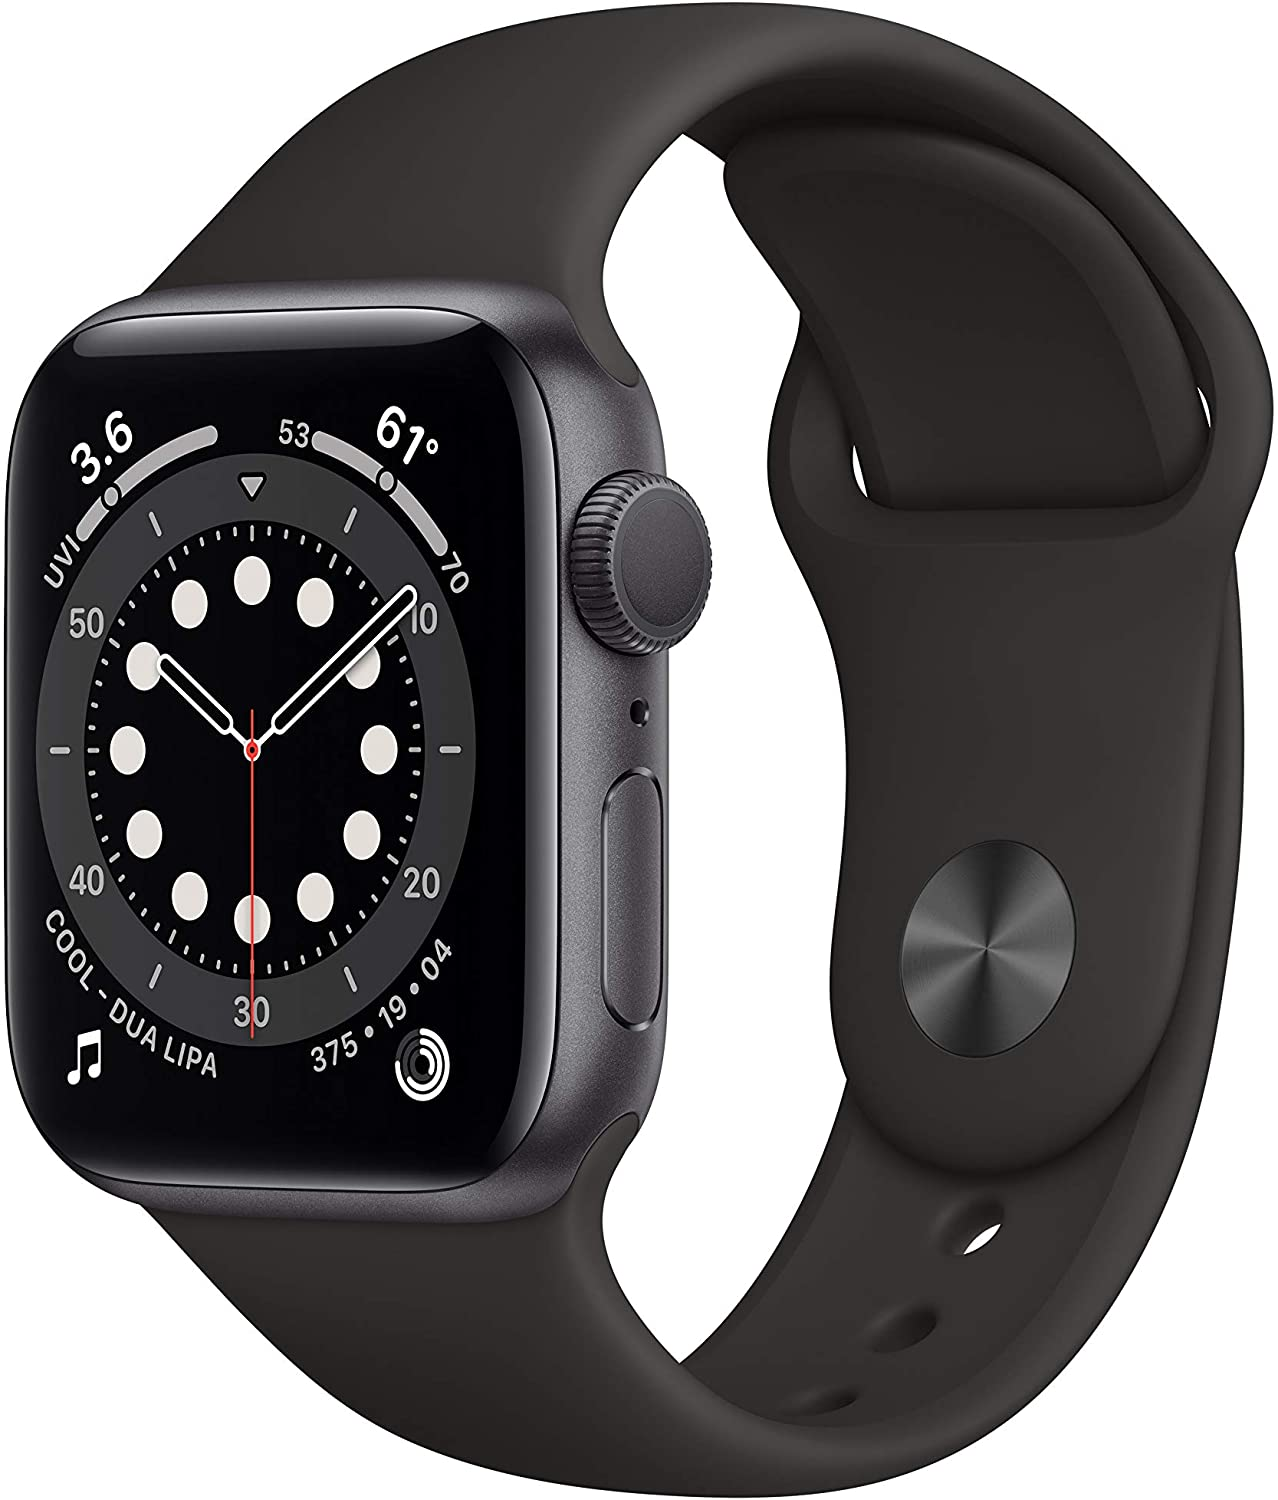 new apple watch series 6 black color isolated on white background